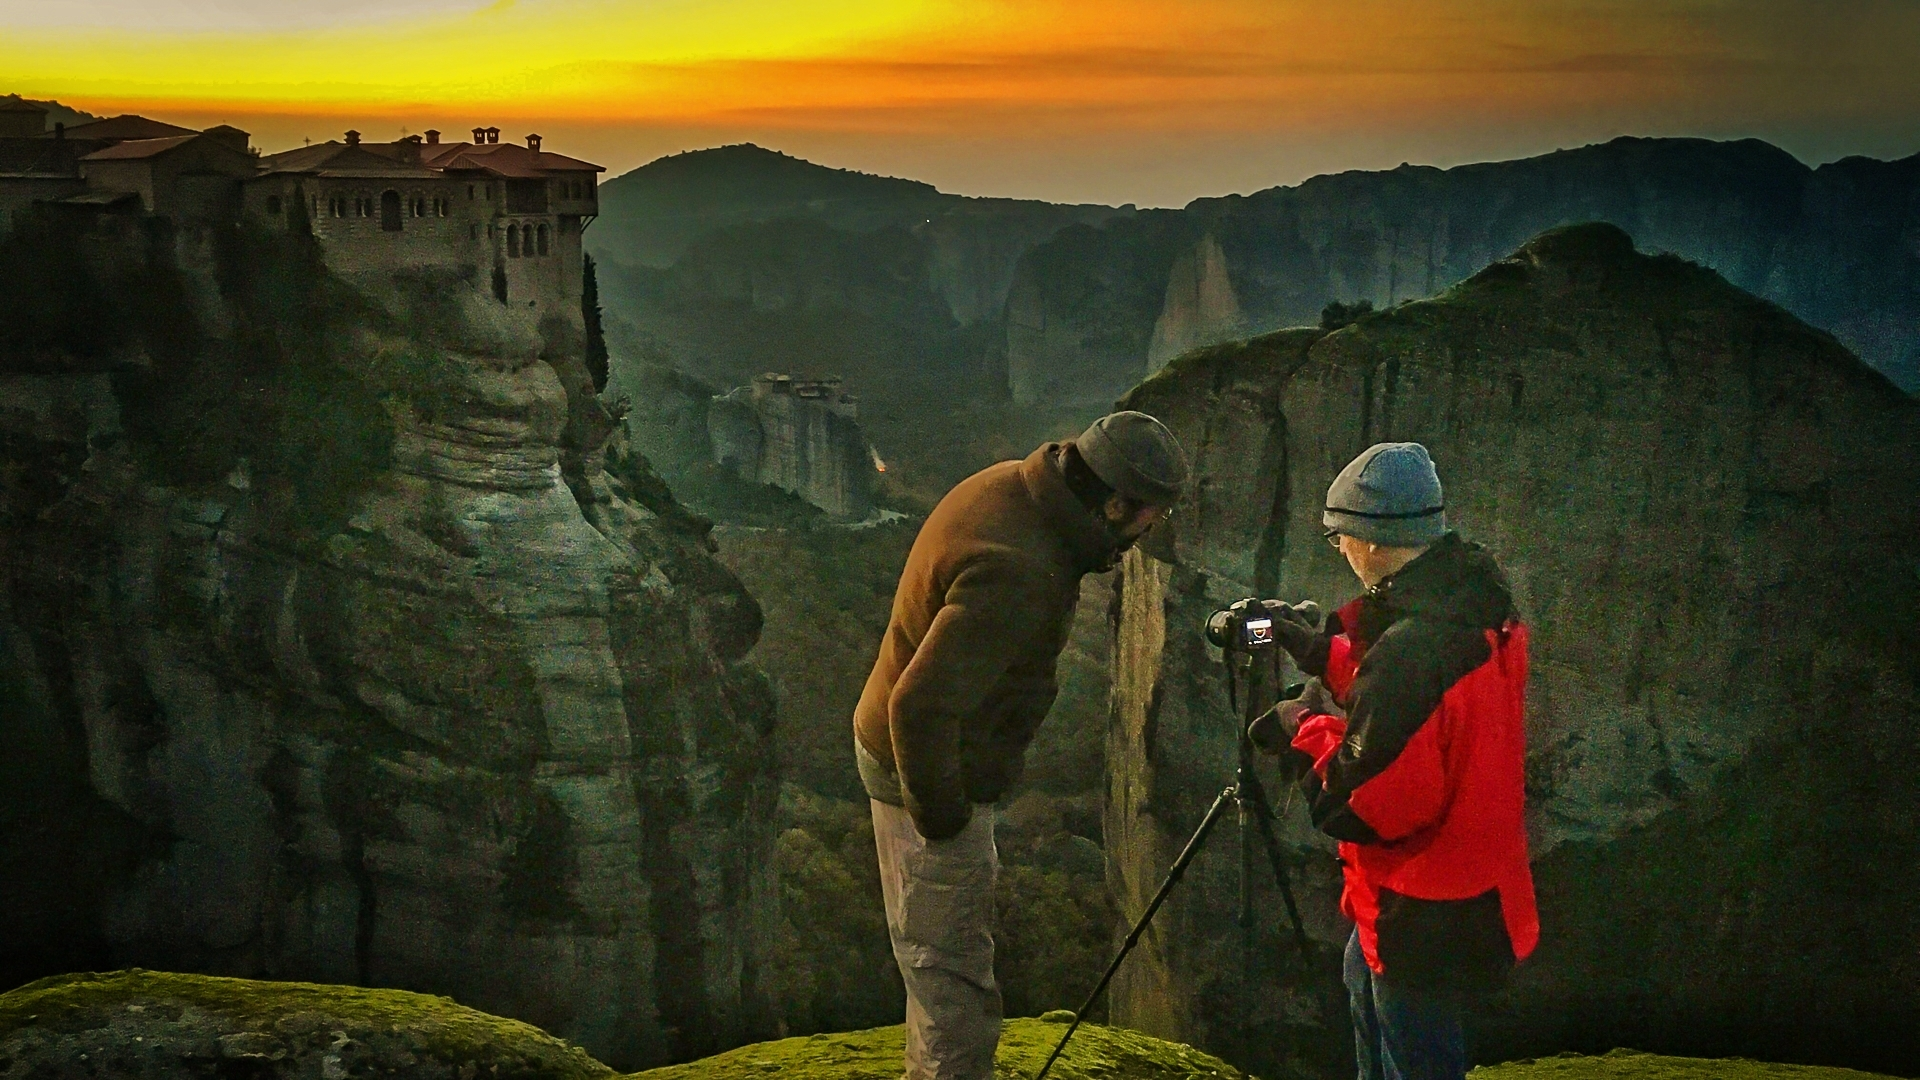 George assisting a guest as dawn spread over the horizon as we set up for our first sunrise shoot at the Meteora during our autumn landscape photography workshop to Meteora & Pindos in Greece